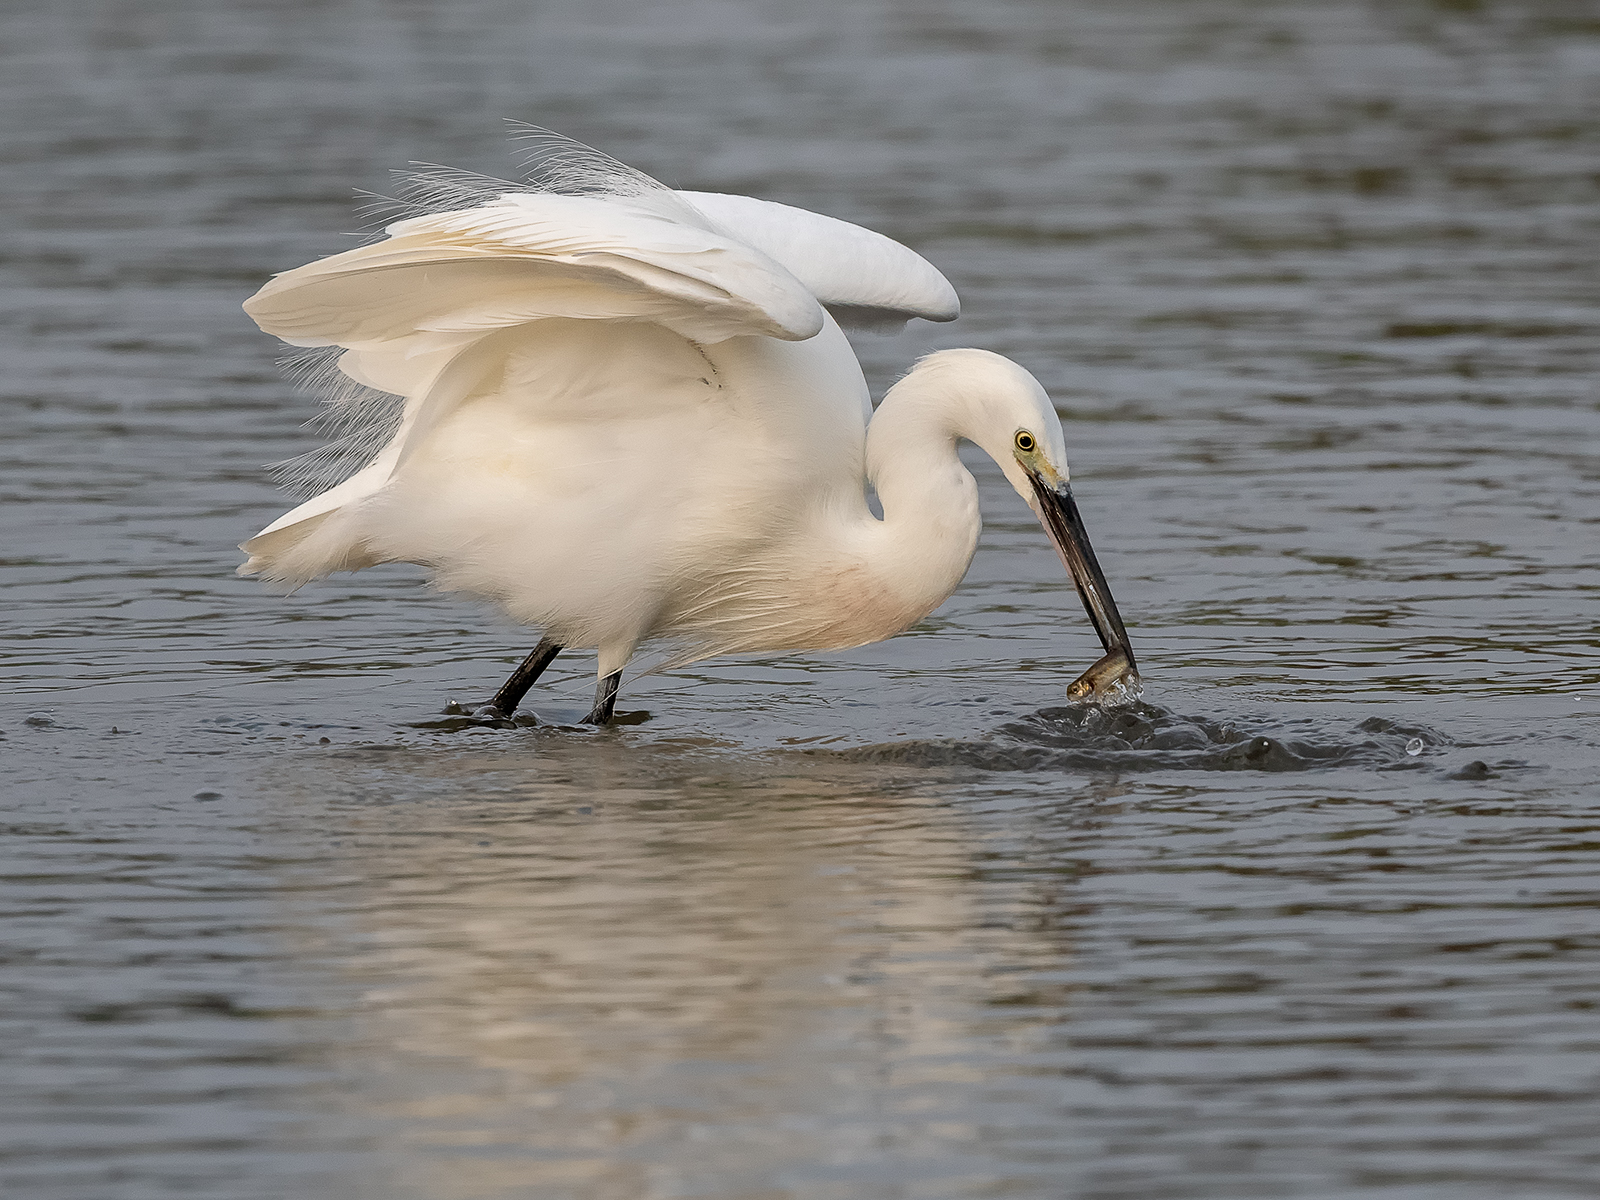 First 'Little Egret' by Mark Cooper